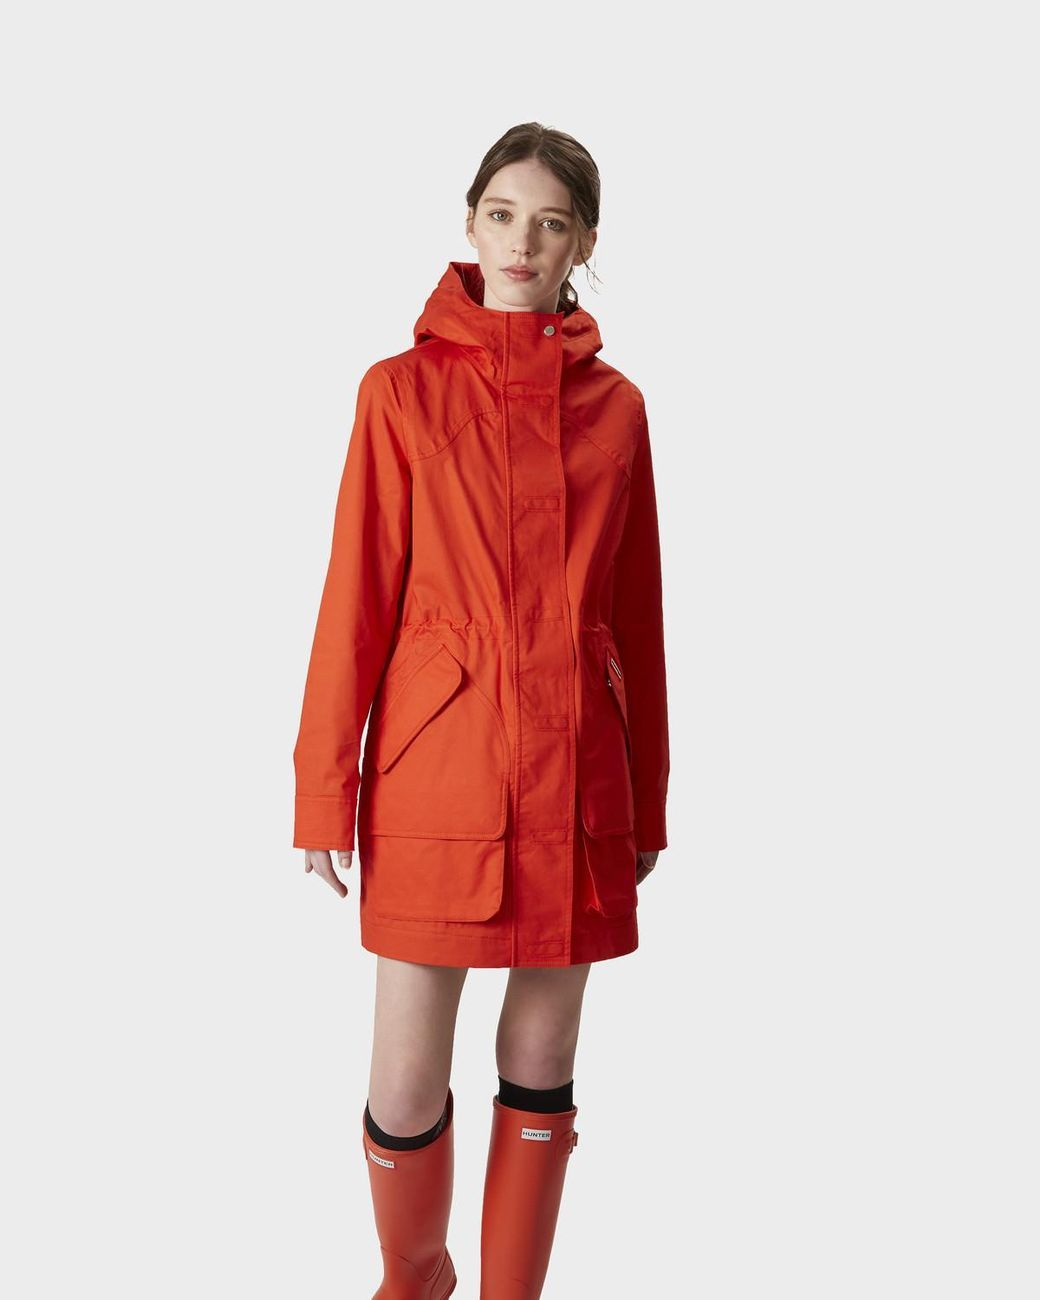 55b498d85327b Buy Hunter Orange Women's Original Waterproof Cotton Hunting Coat. Similar  products also available. SALE now on!